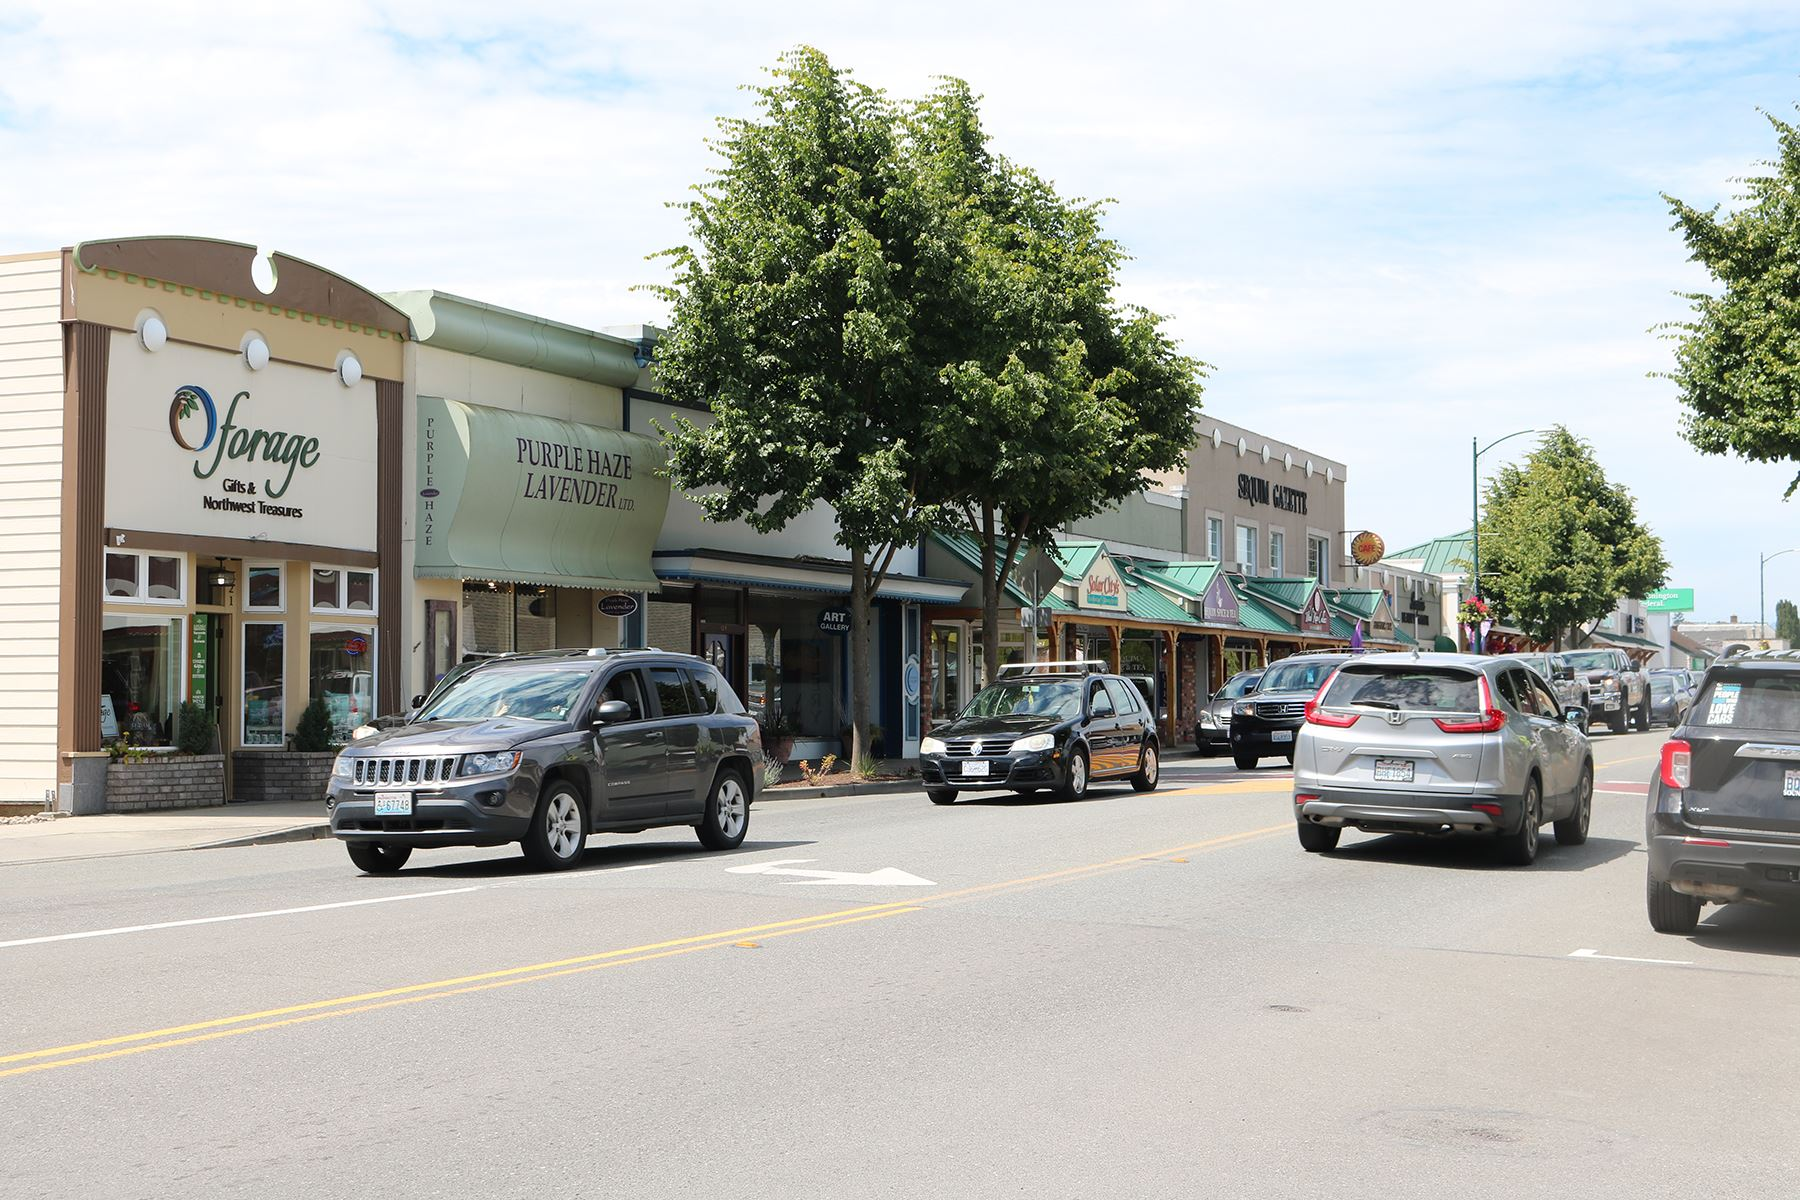 Downtown Sequim Washington Street